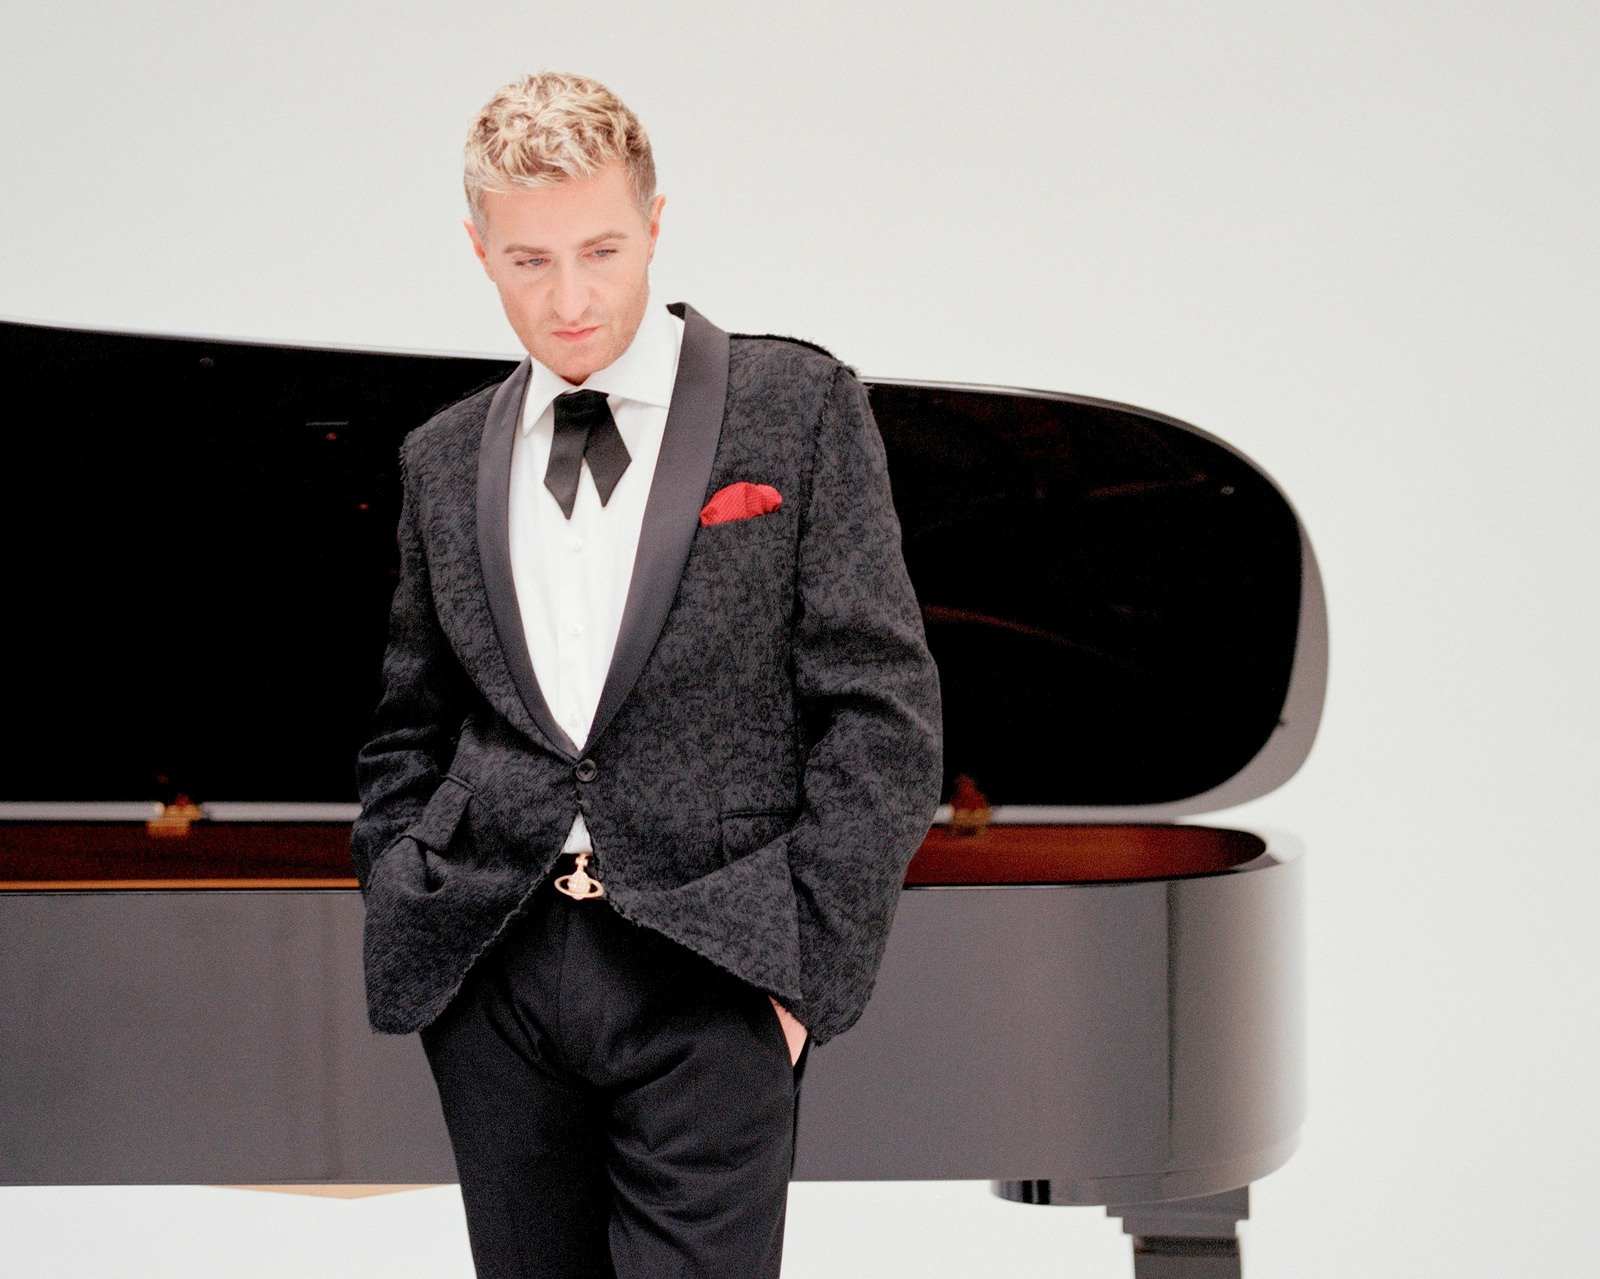 Colburn Piano Extravaganza Featuring Jean-Yves Thibaudet and Fabio Bidini. Pictured: Jean-Yves Thibaudet.